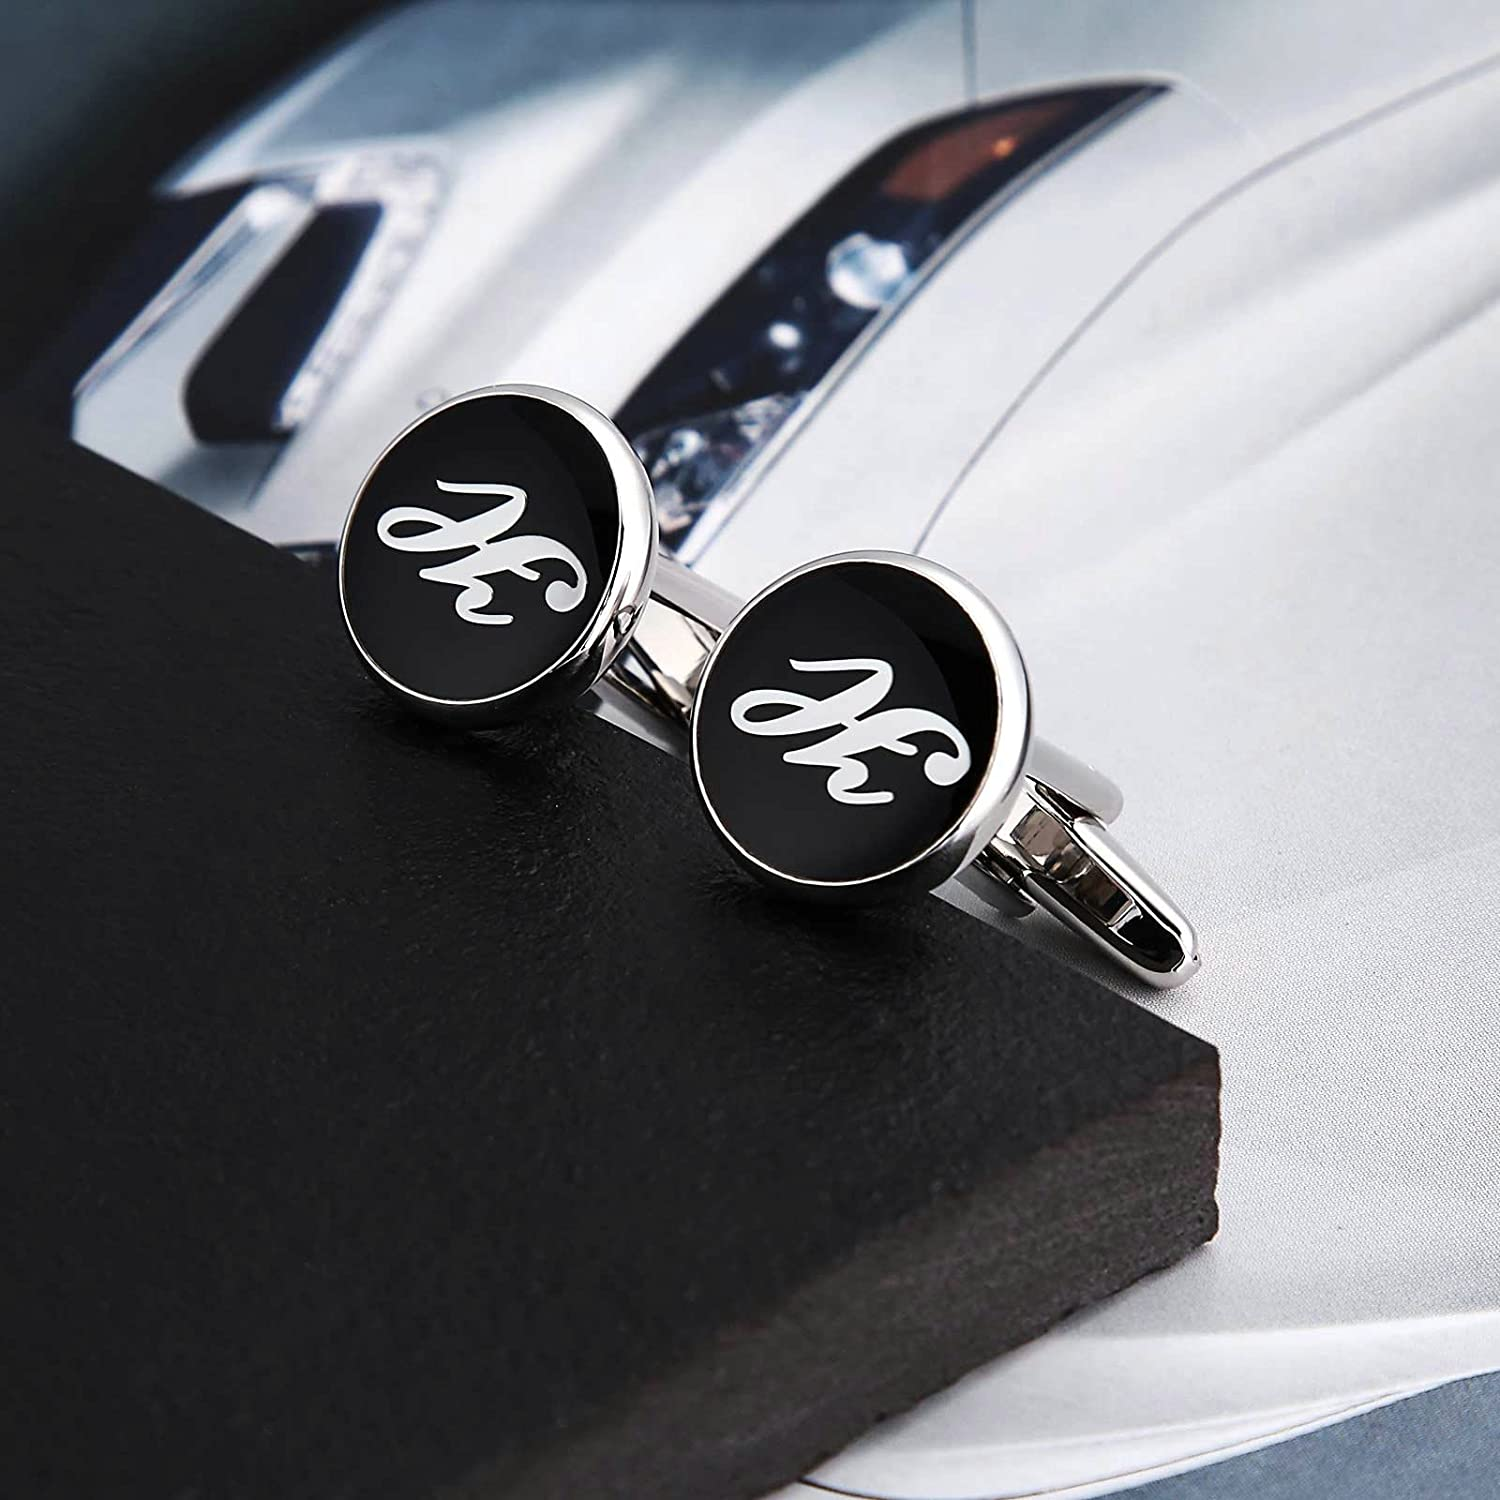 Amazon.com: KnSam Stainless Steel Black White Alphabet Letter h Classic Round Shape Cufflinks for Mens Shirt Stud: Jewelry